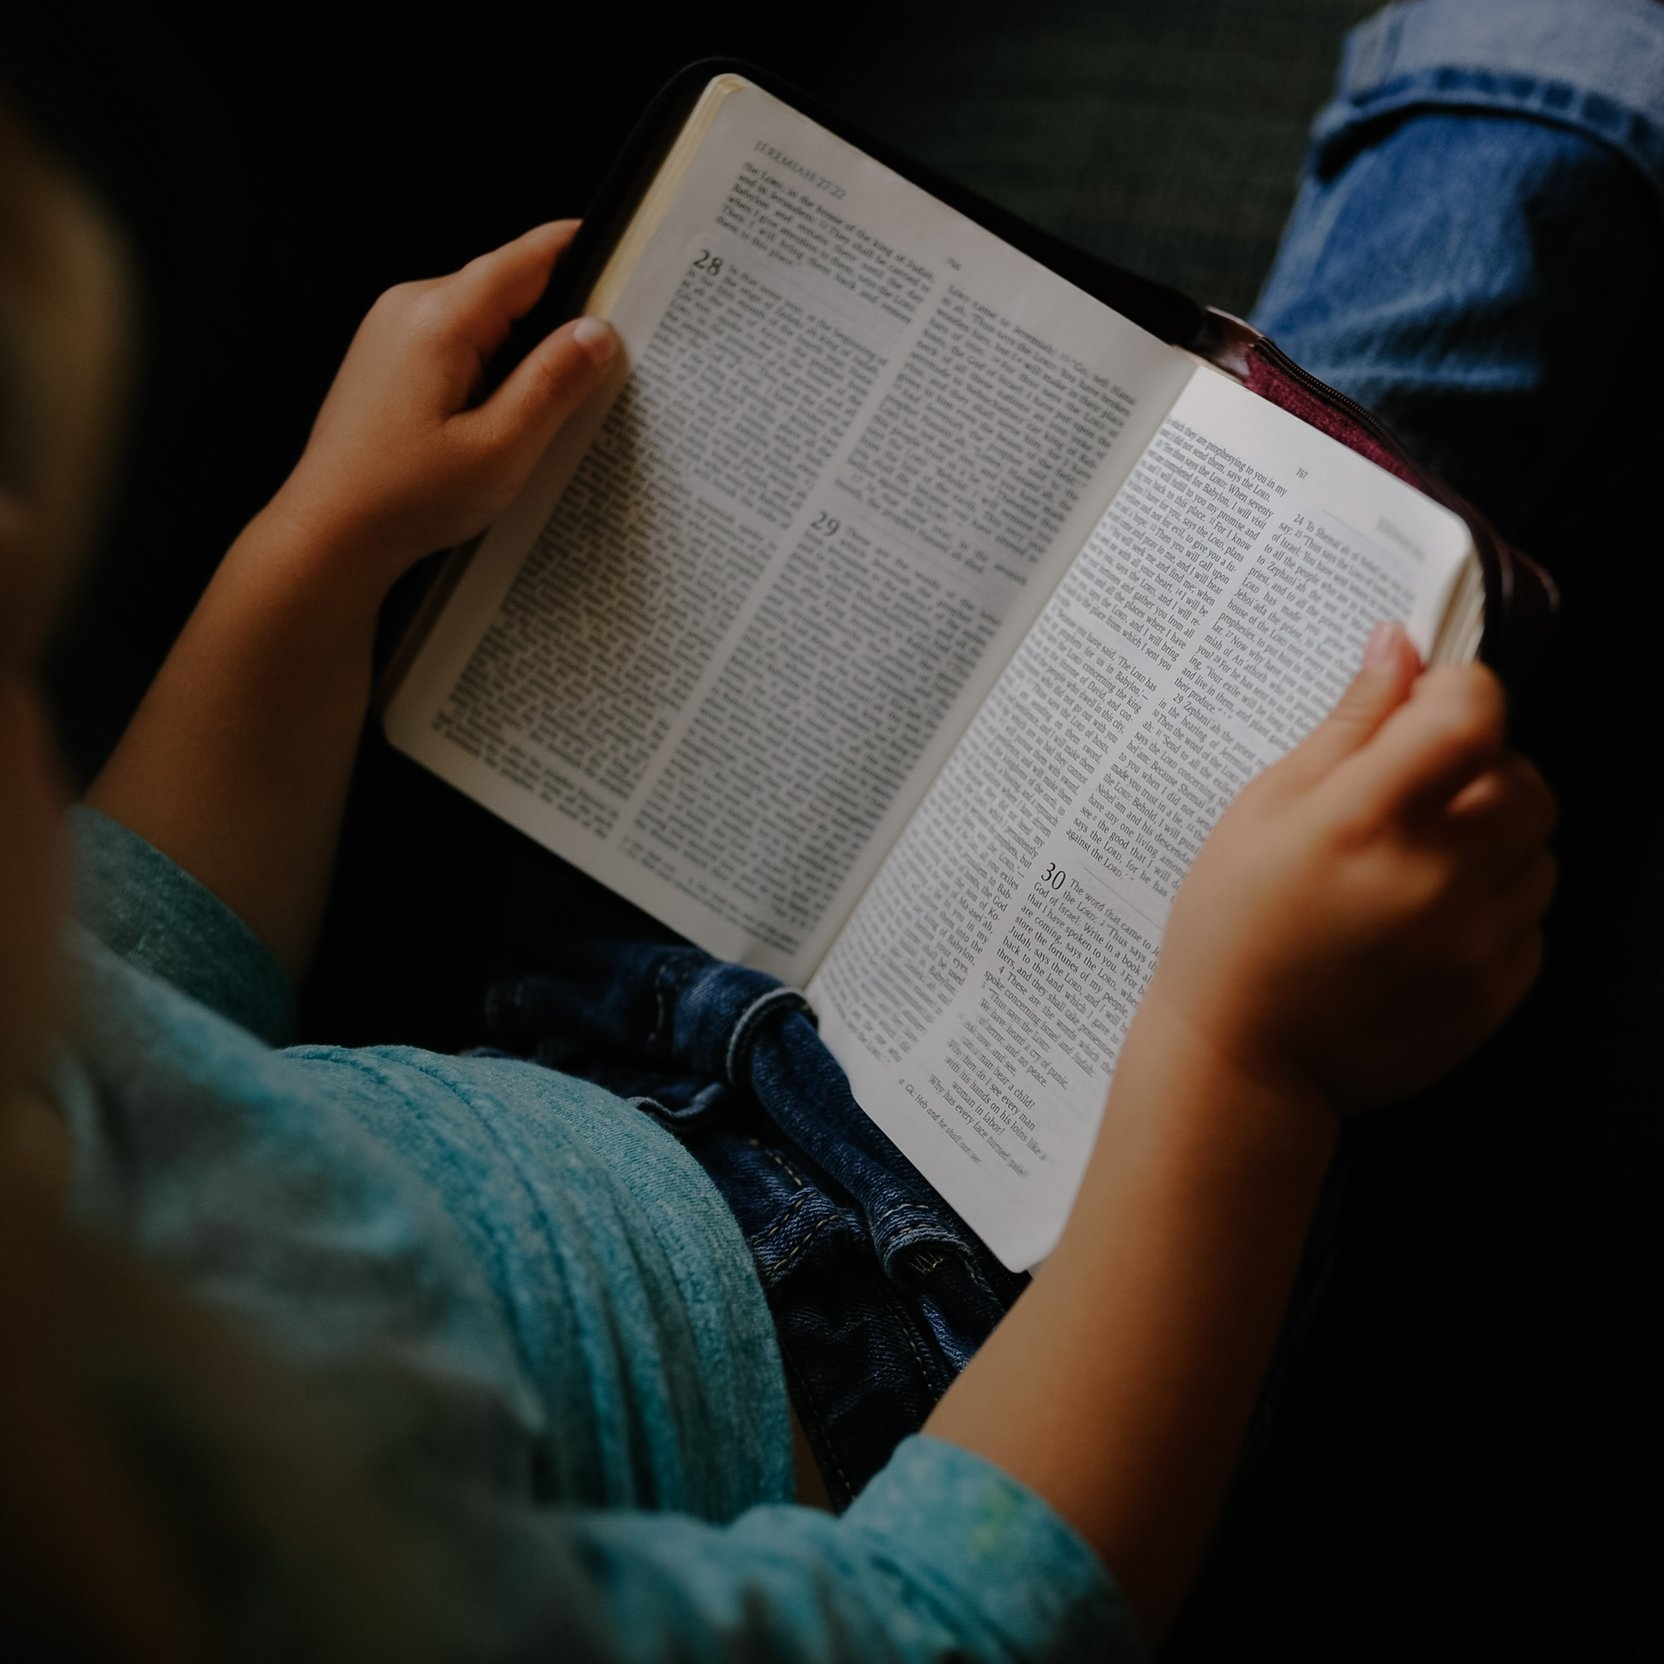 SUnday School - Sundays at 8:45 am (September to May)We have great curriculum and terrific mentors to help to nurture our children and youth as they learn about our faith.